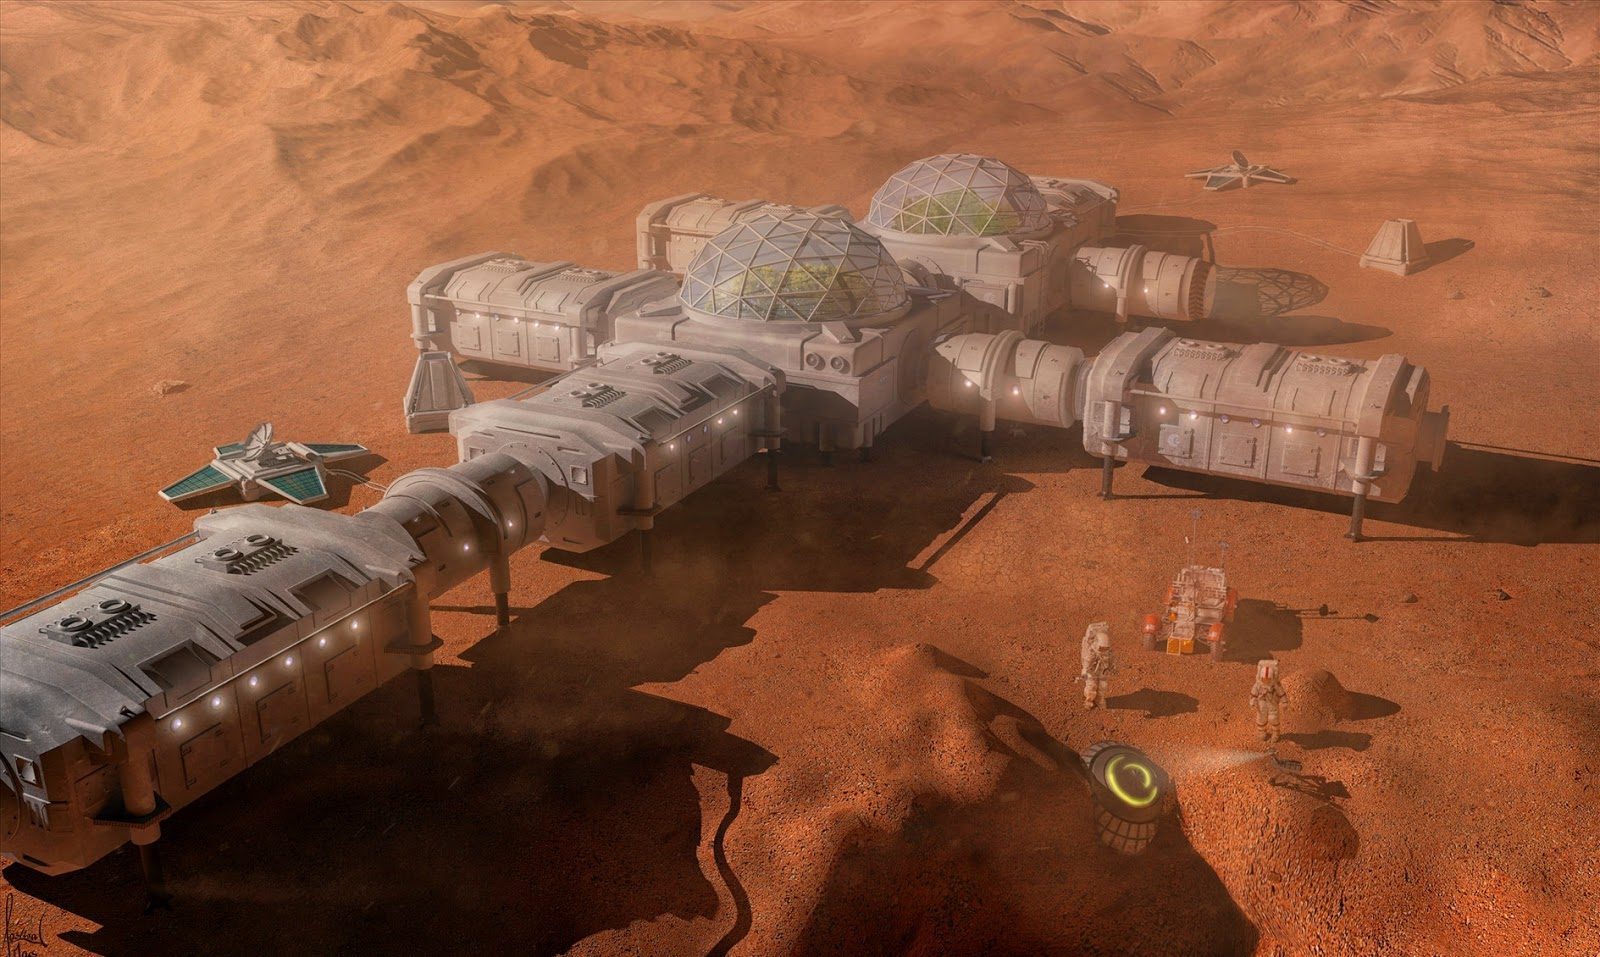 Mars base by Christian Gruner